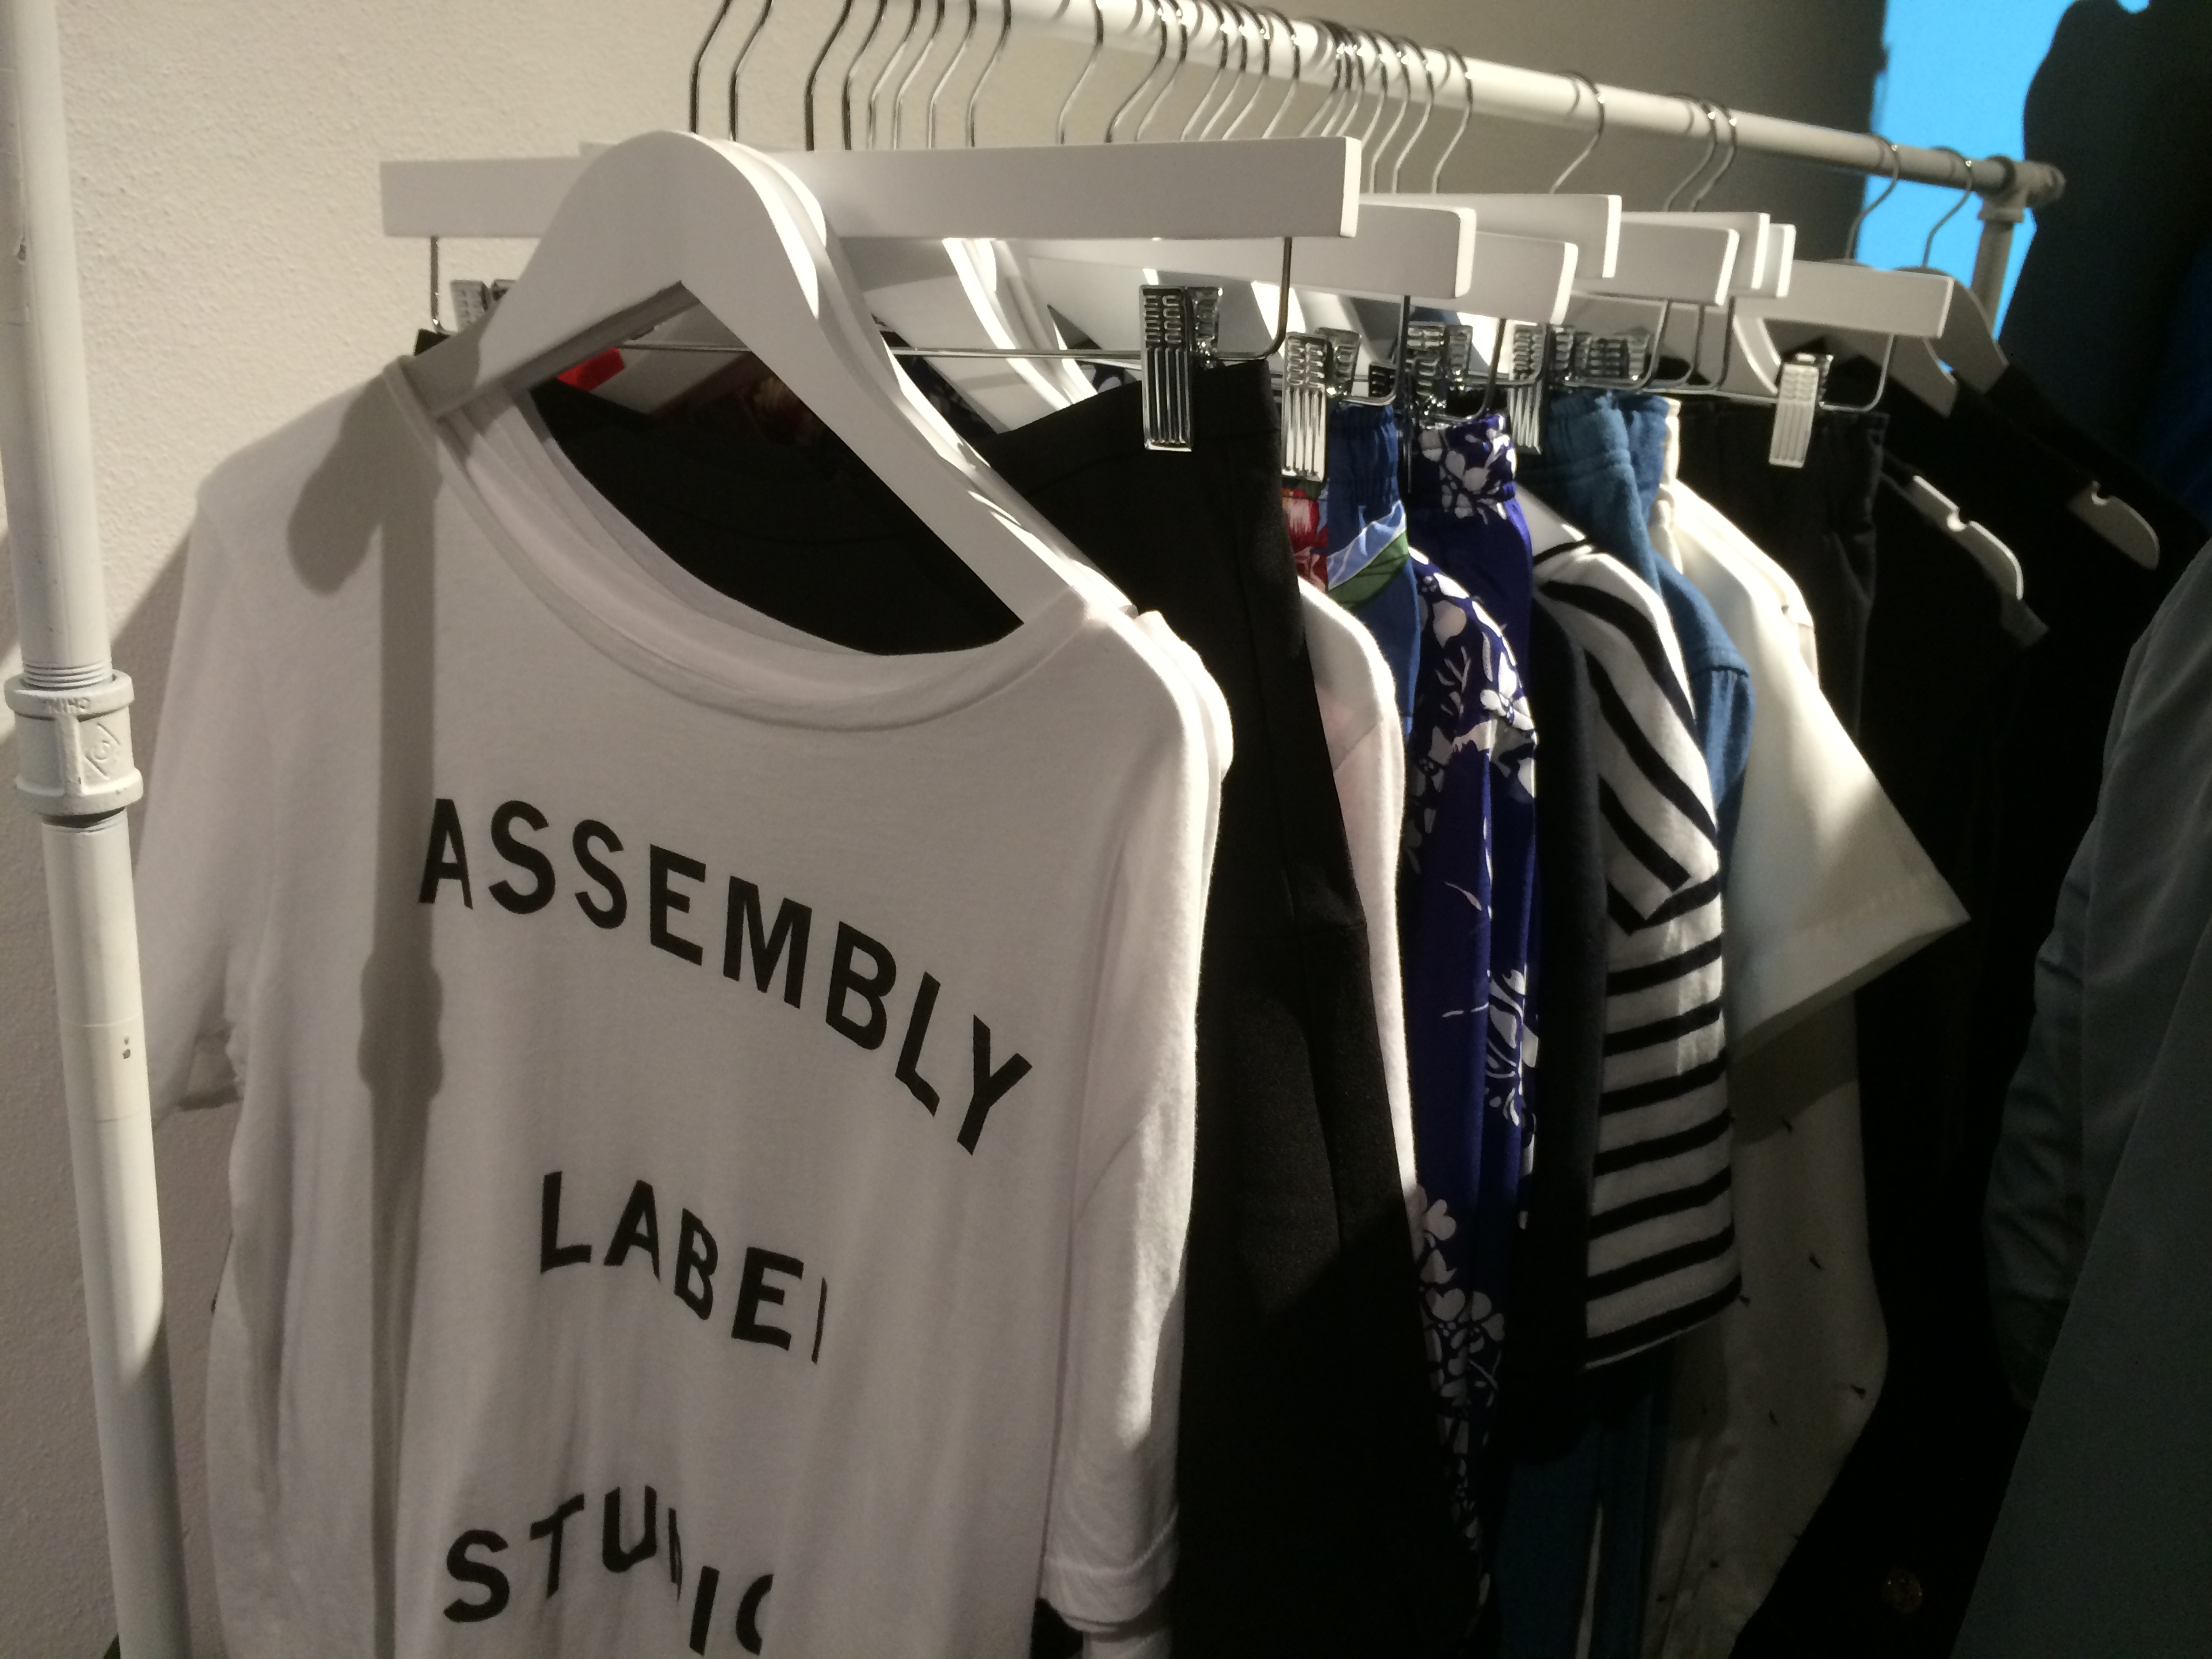 Assembly Label Launch